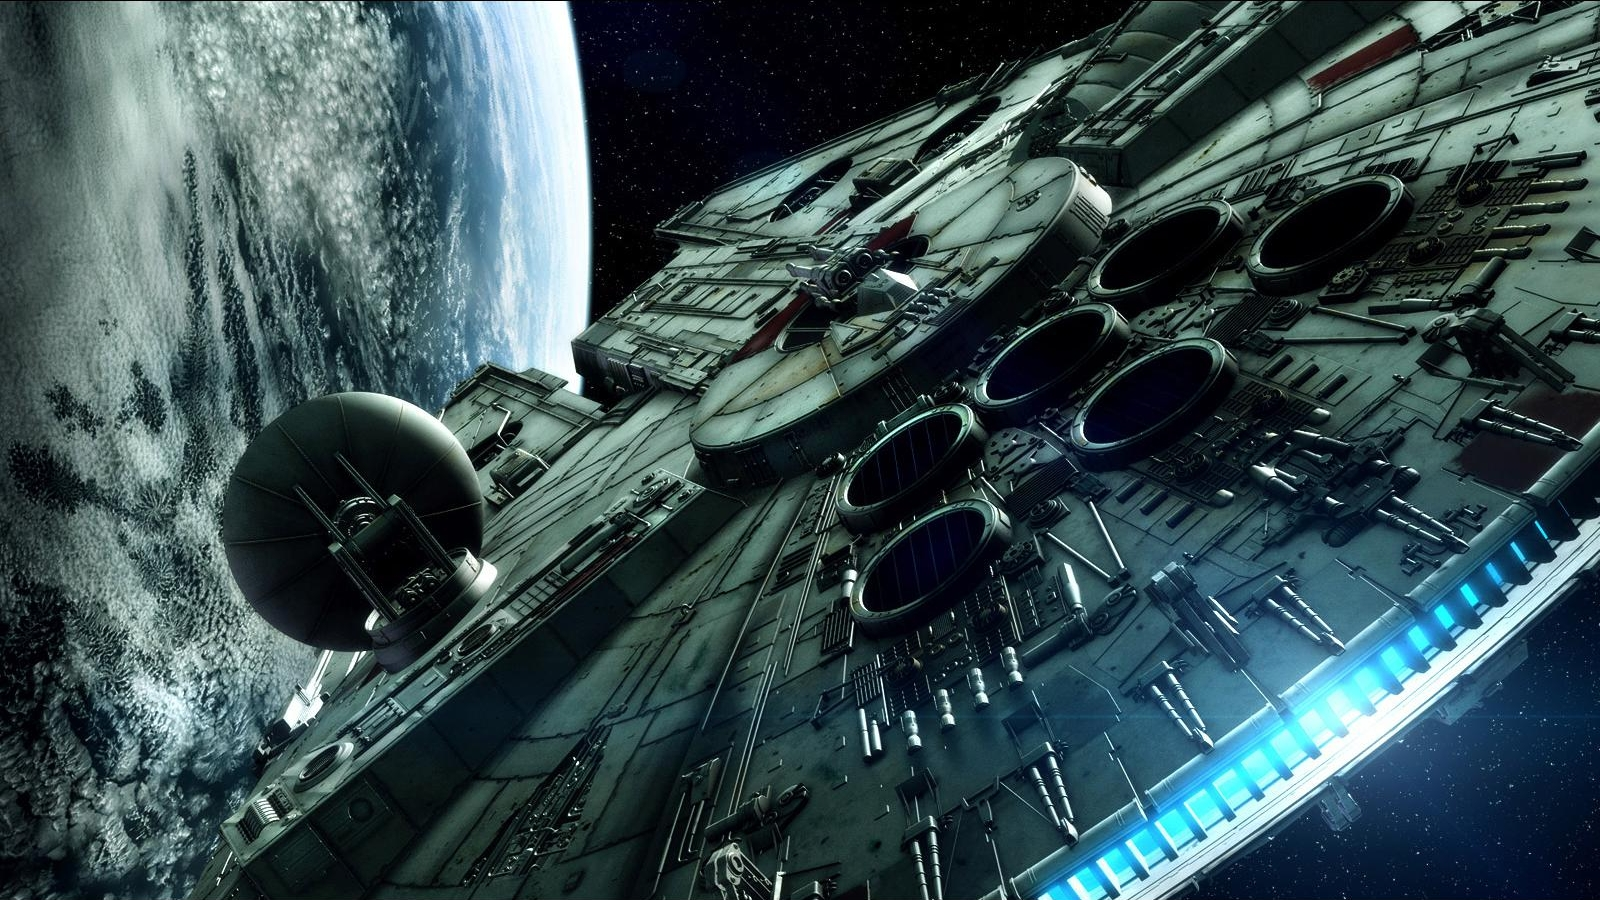 Star Wars Wallpaper 1600x900